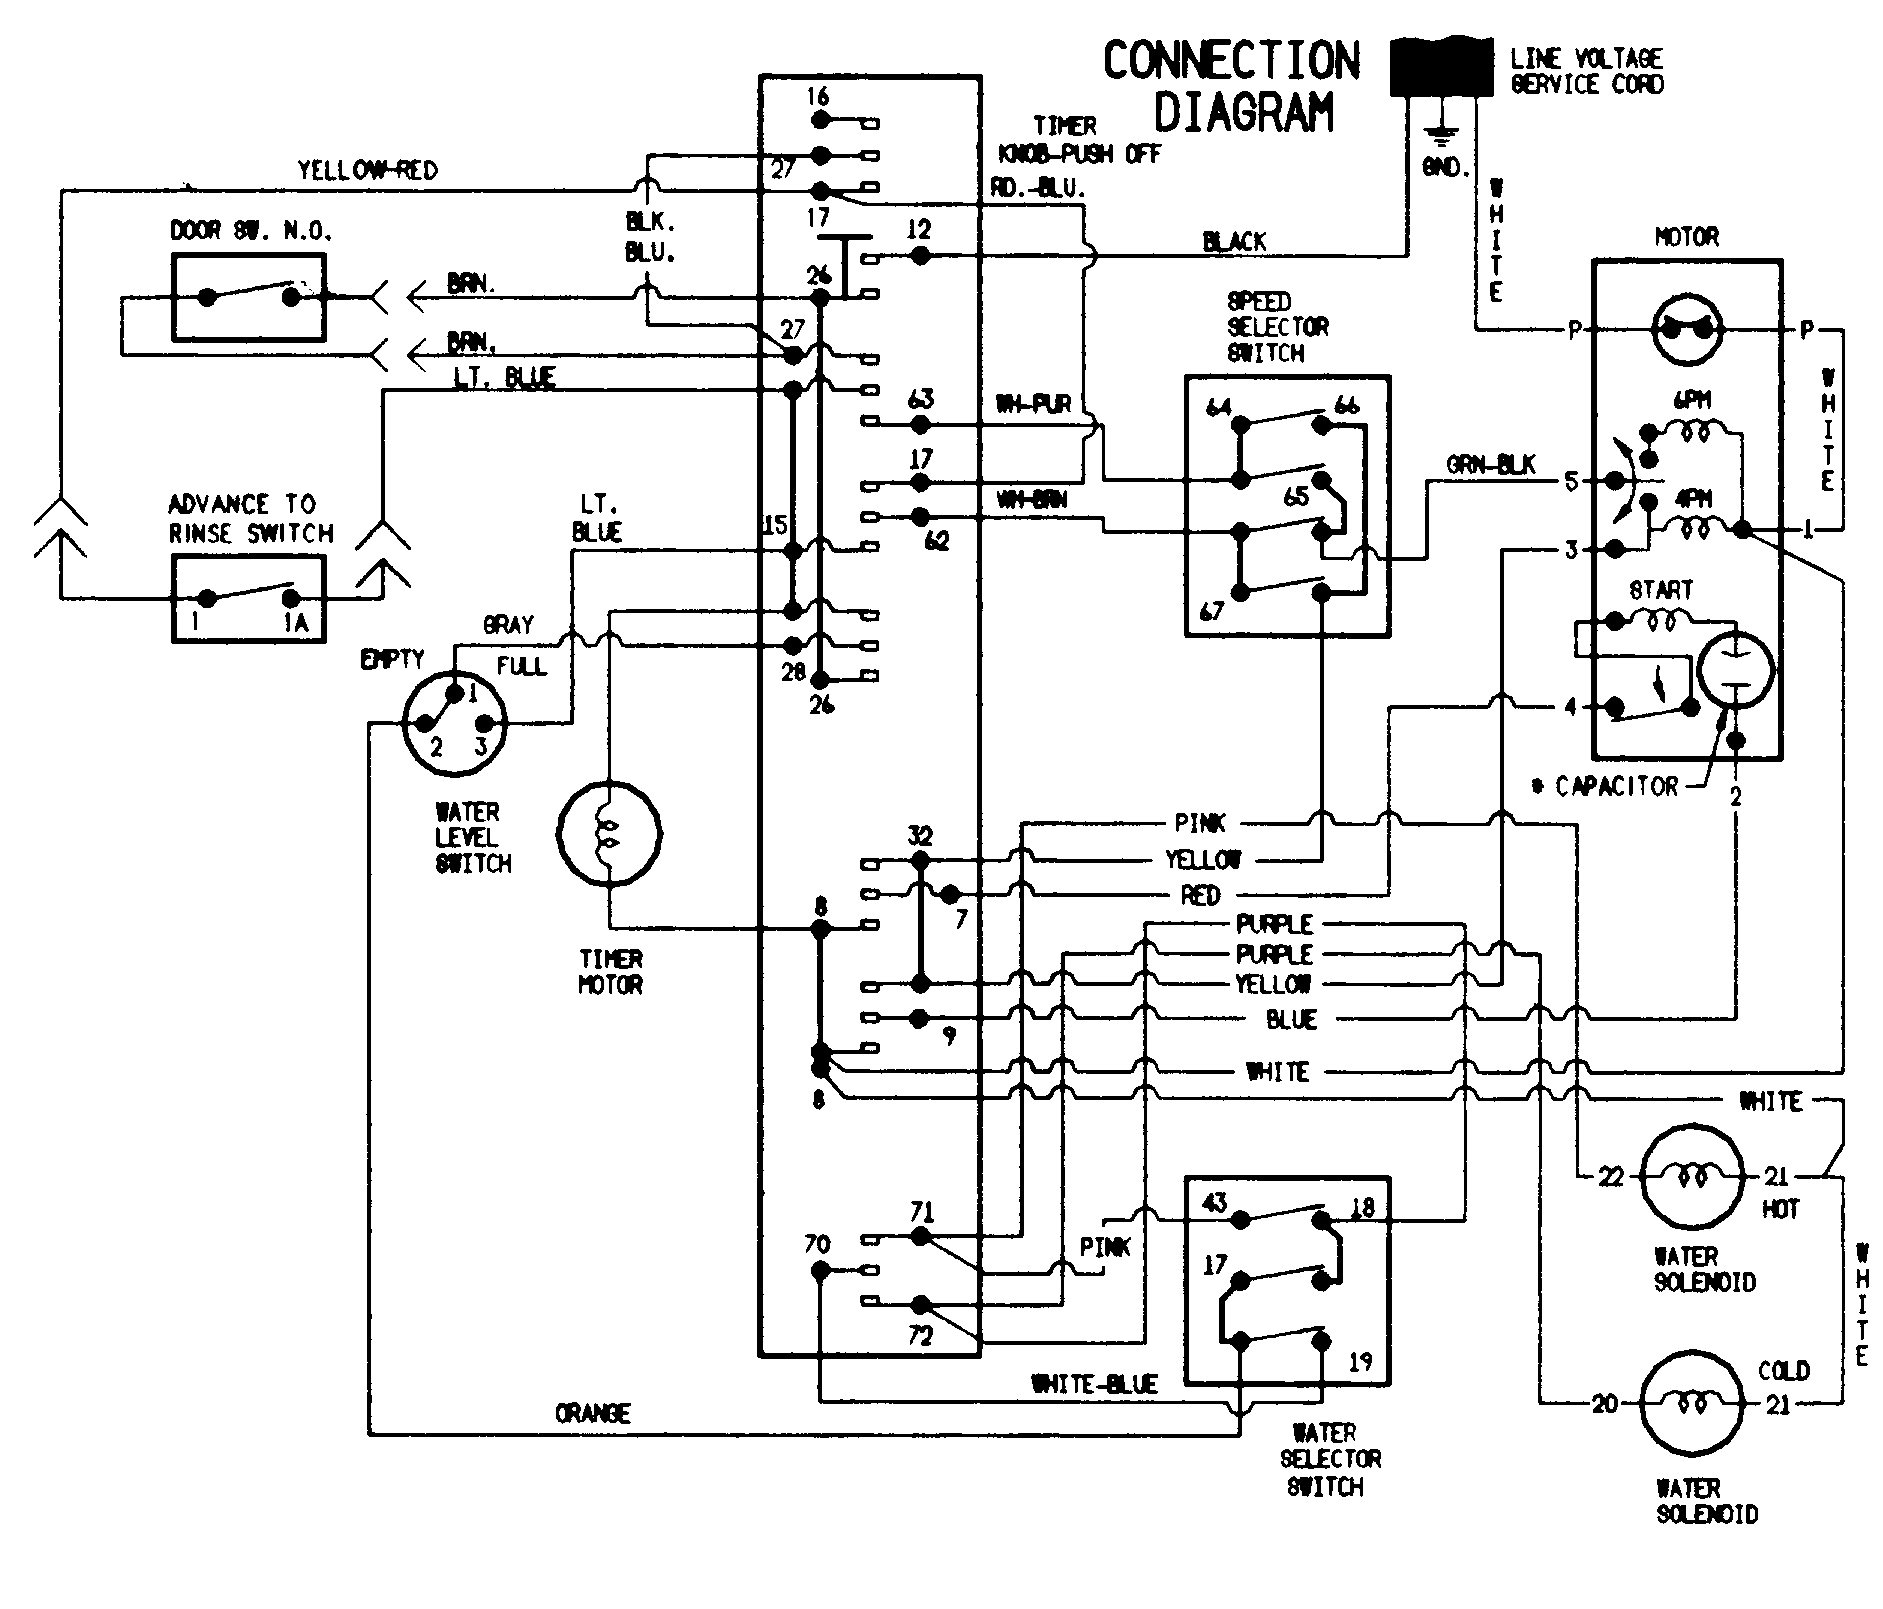 whirlpool dryer schematic wiring diagram | free wiring diagram dryer schematic ge dryer schematic diagram